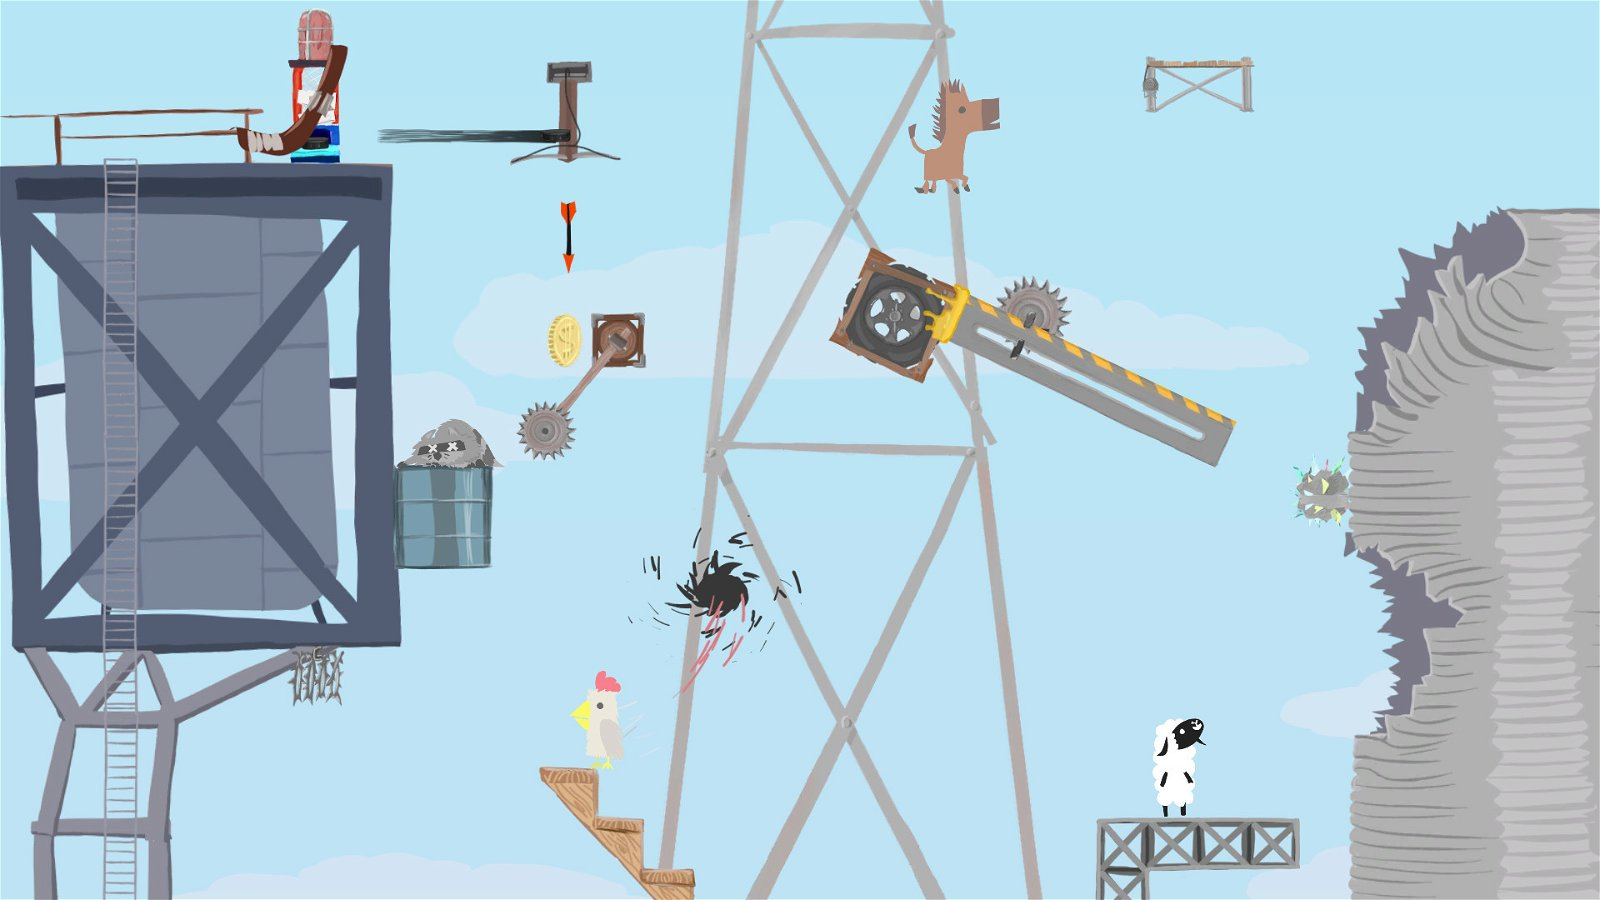 Ultimate Chicken Horse (PS4) Review: Frenetic Multiplayer Craziness! 1